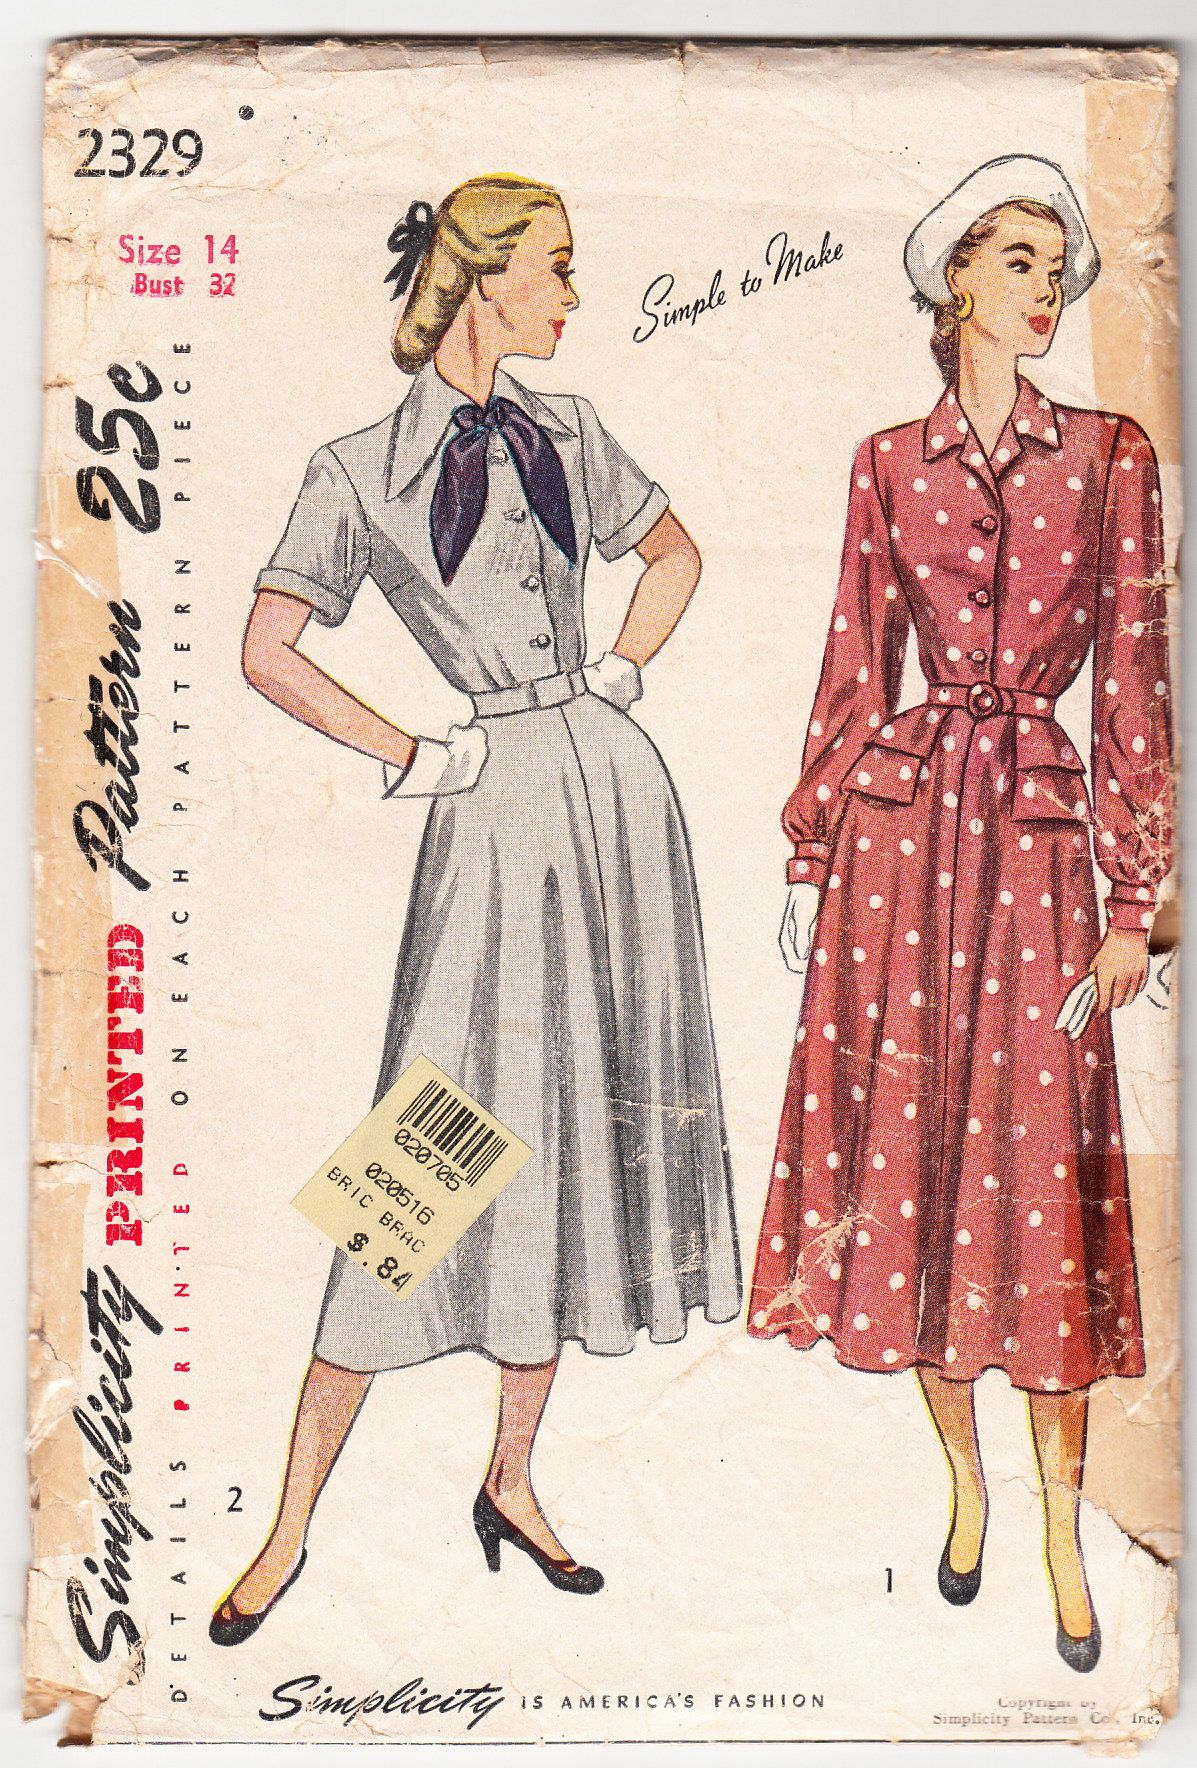 Vintage 1948 Simplicity 2329 Sewing Pattern Misses/' One-Piece Dress Size 14 Bust 32